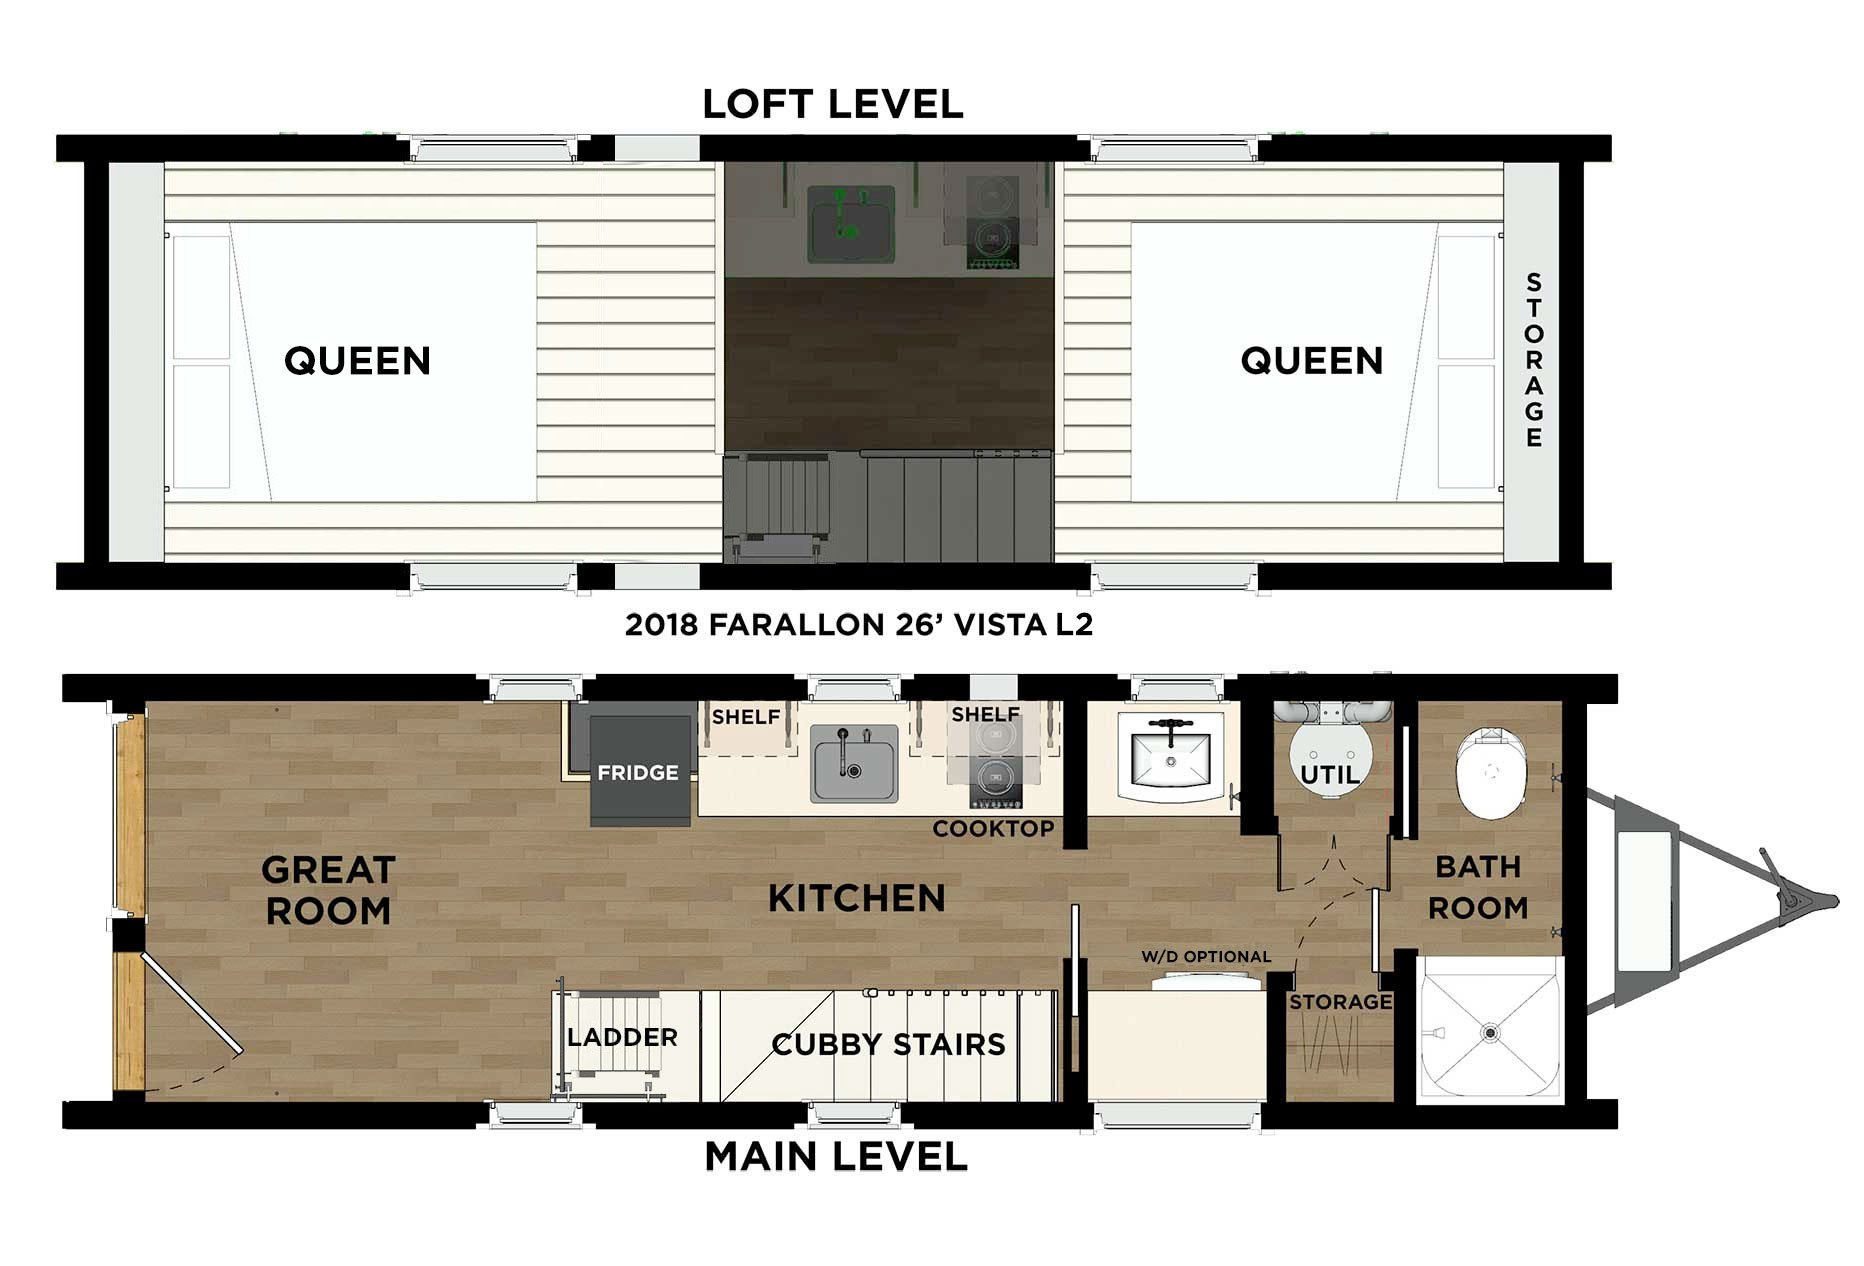 2018 Farallon Vista L2 Floor Plan